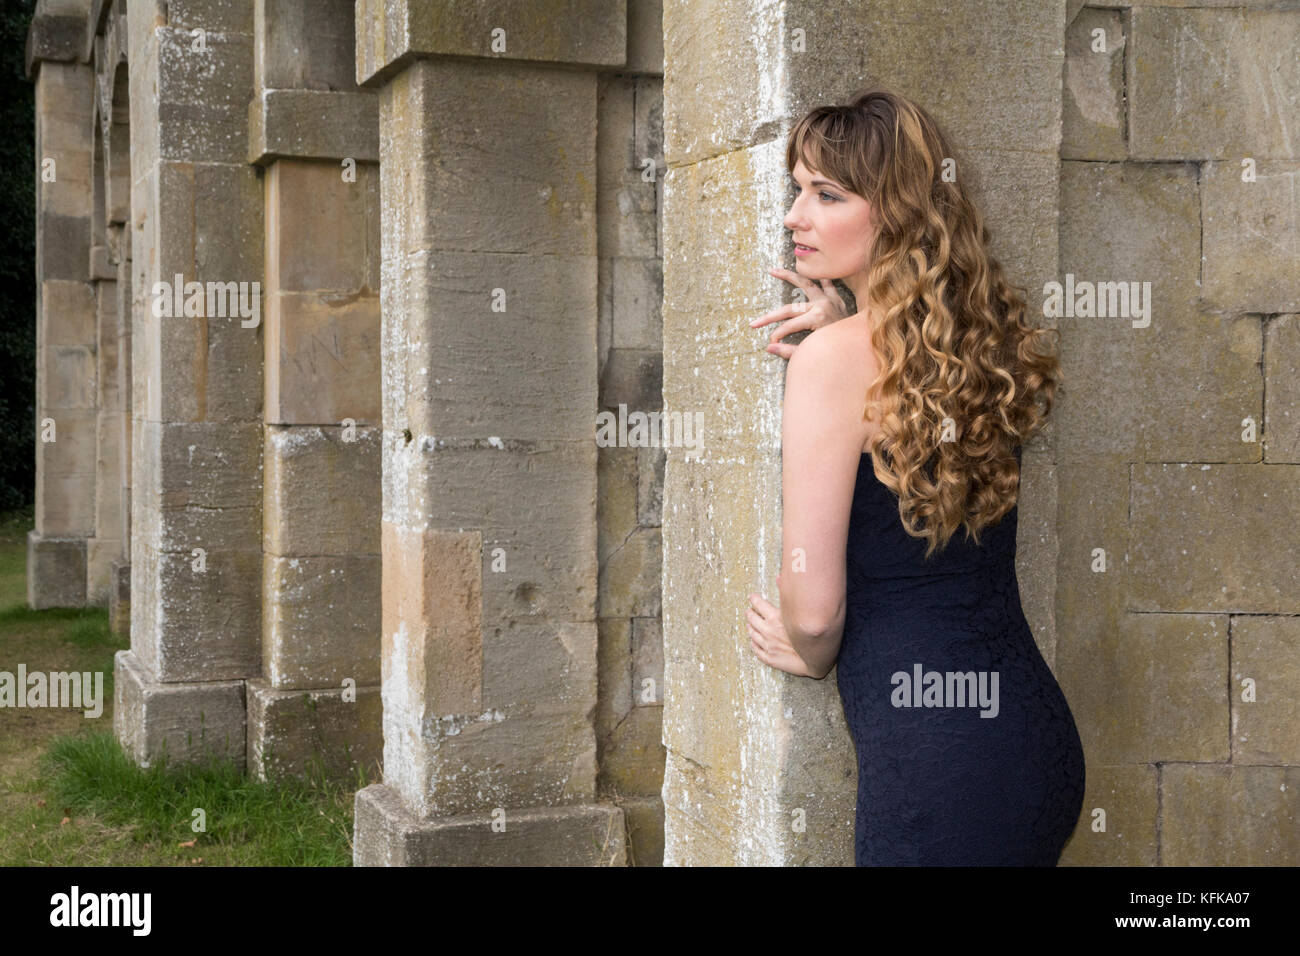 Lady looking around the columns on a portico Stock Photo